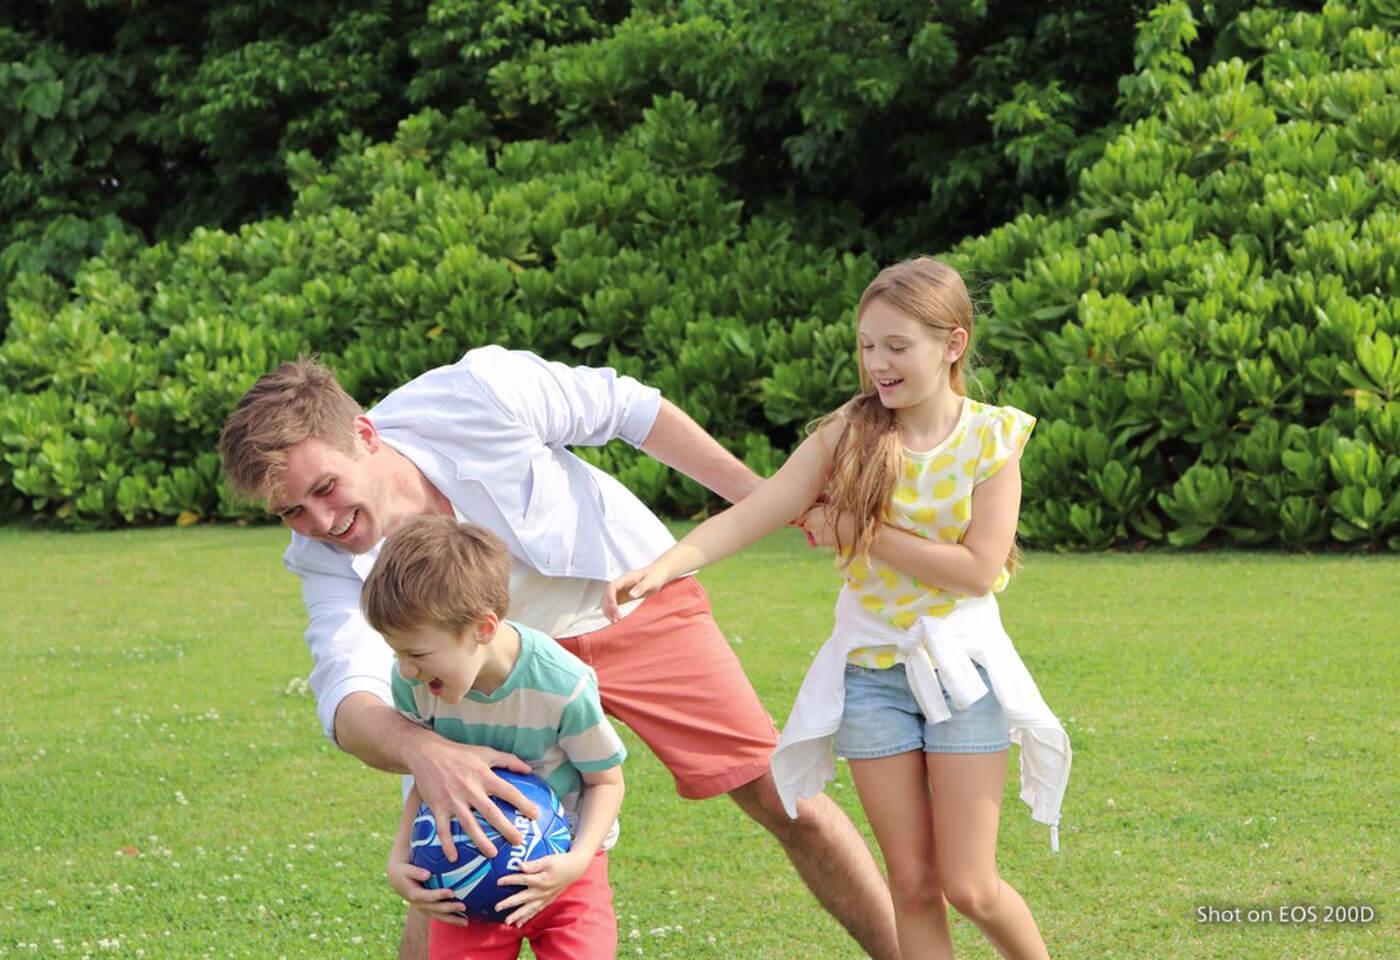 Image of family playing soccer